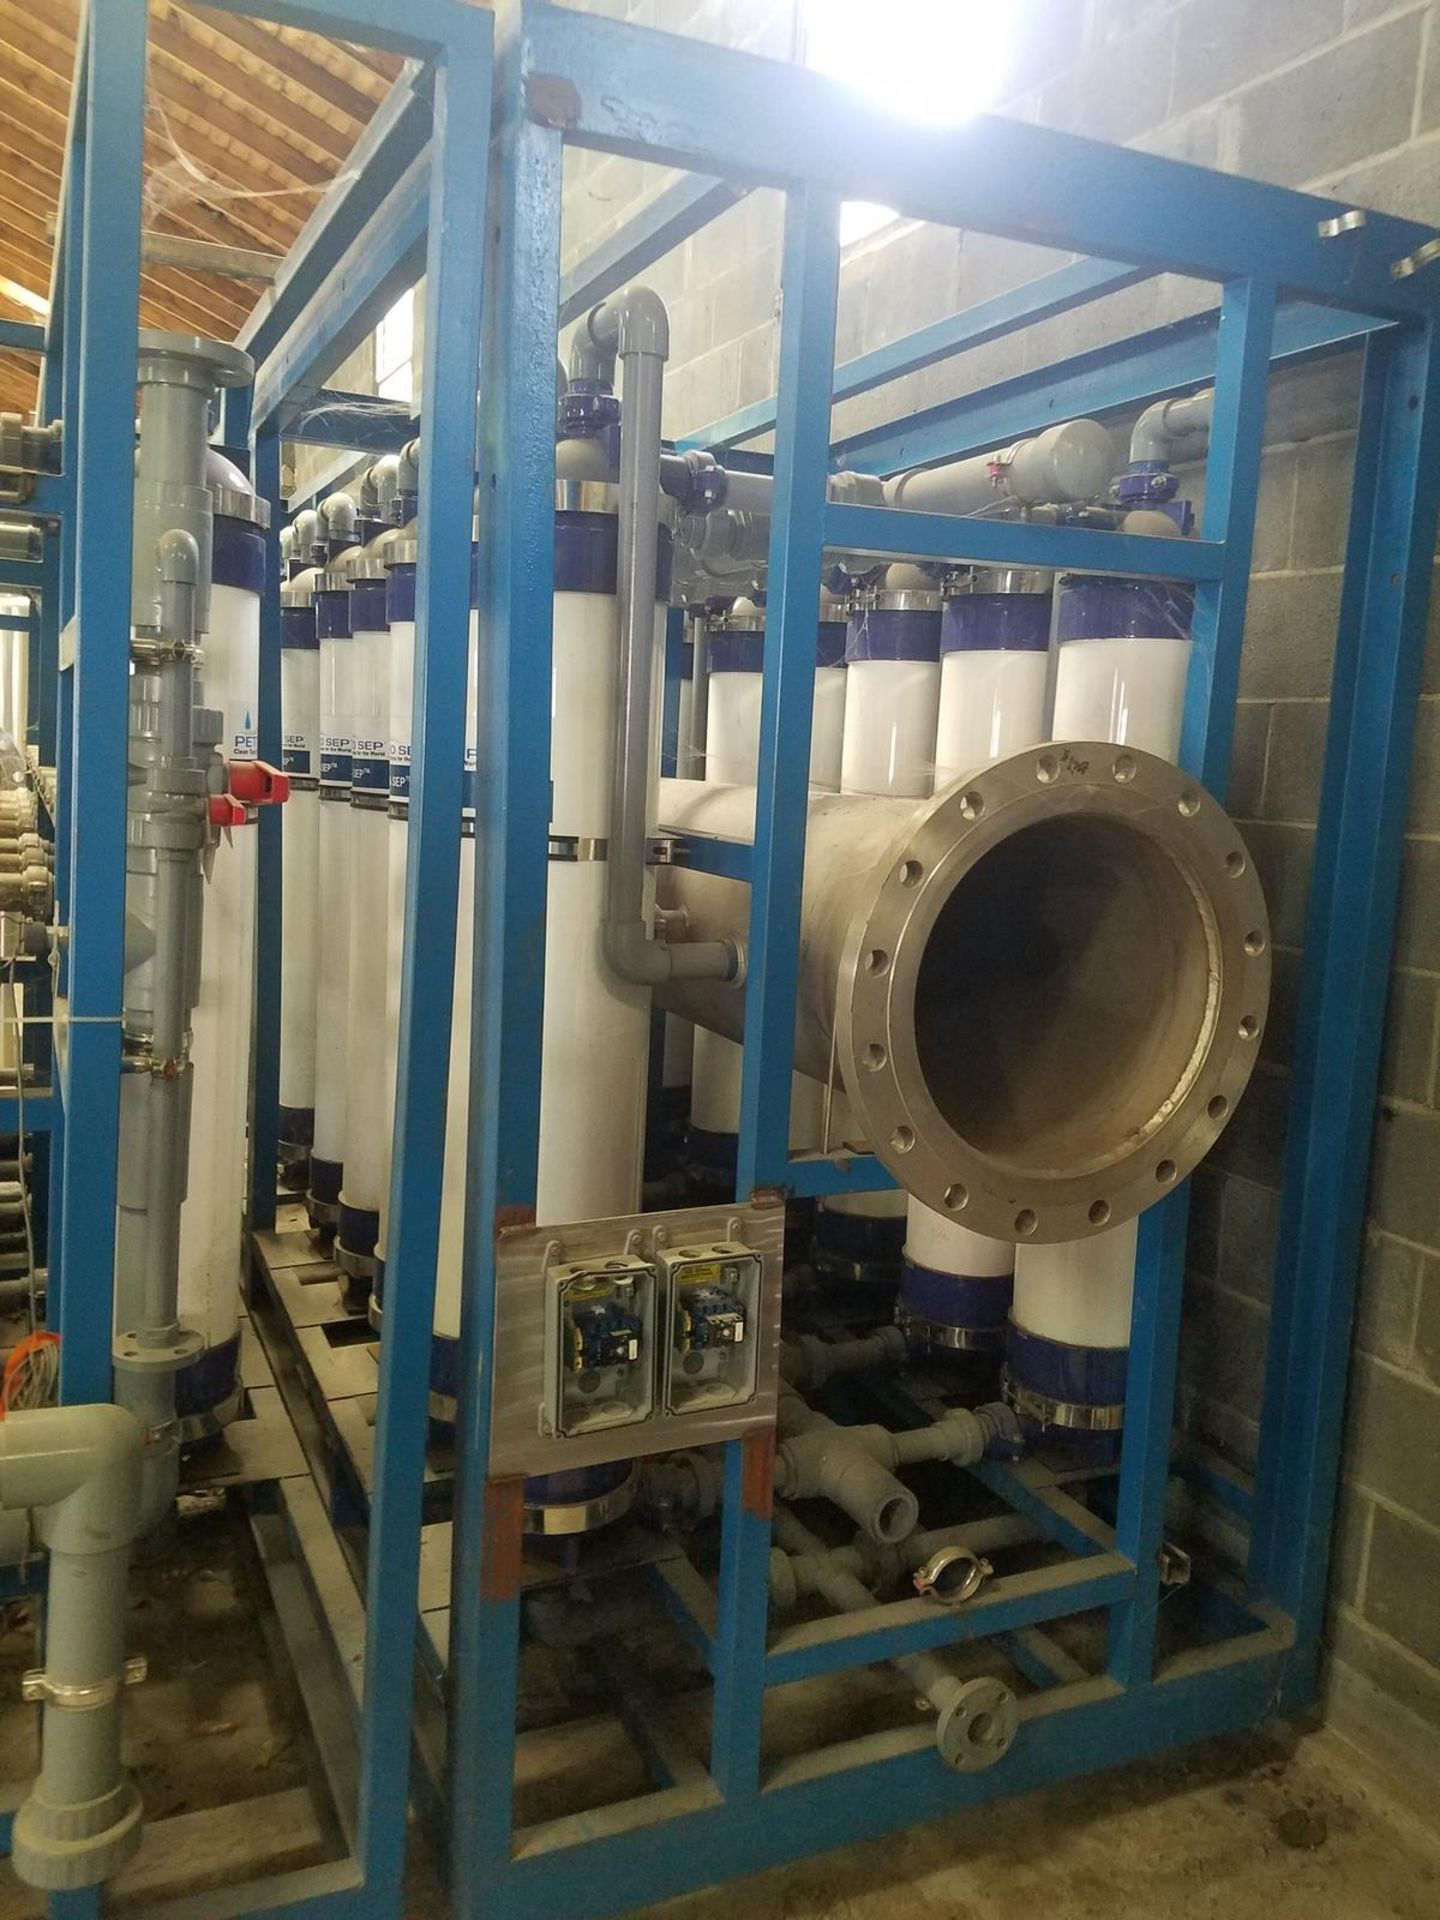 Petro Sep UF Membrane Filtration Skid System, Includes (2) SS Cartridge Filters, | Rig Fee: $1200 - Image 6 of 13